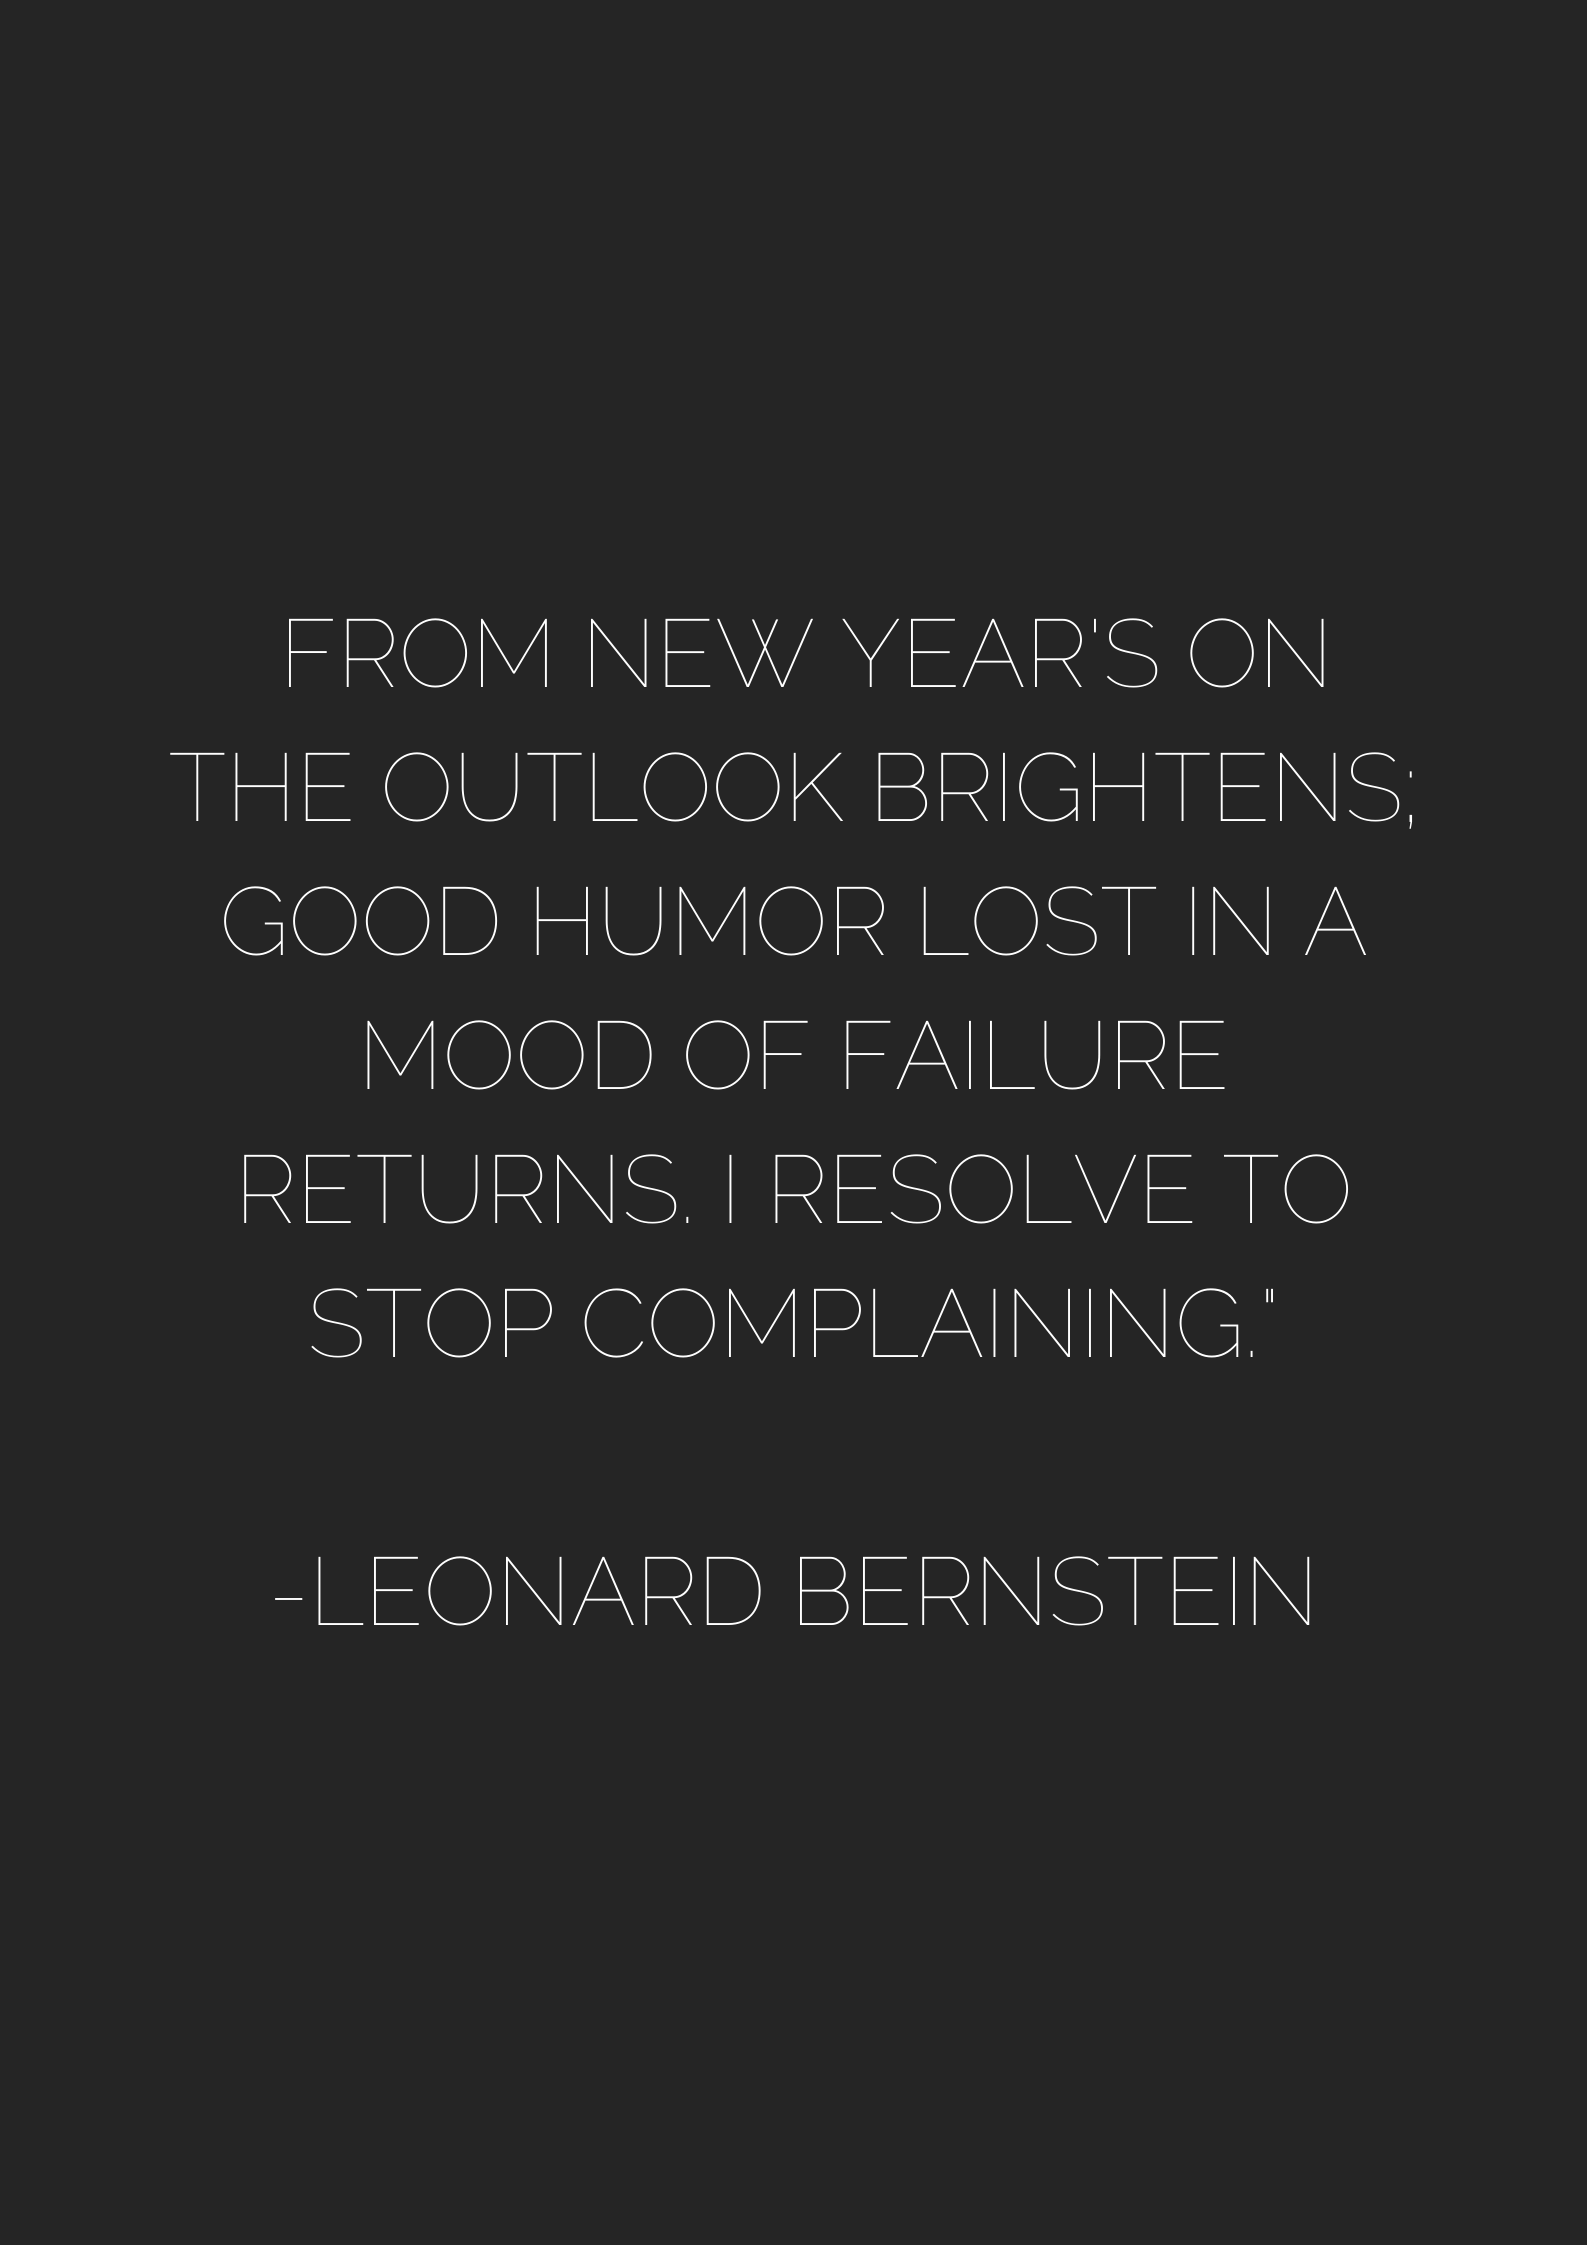 37 Inspirational New Year's Resolution Quotes | New year ...